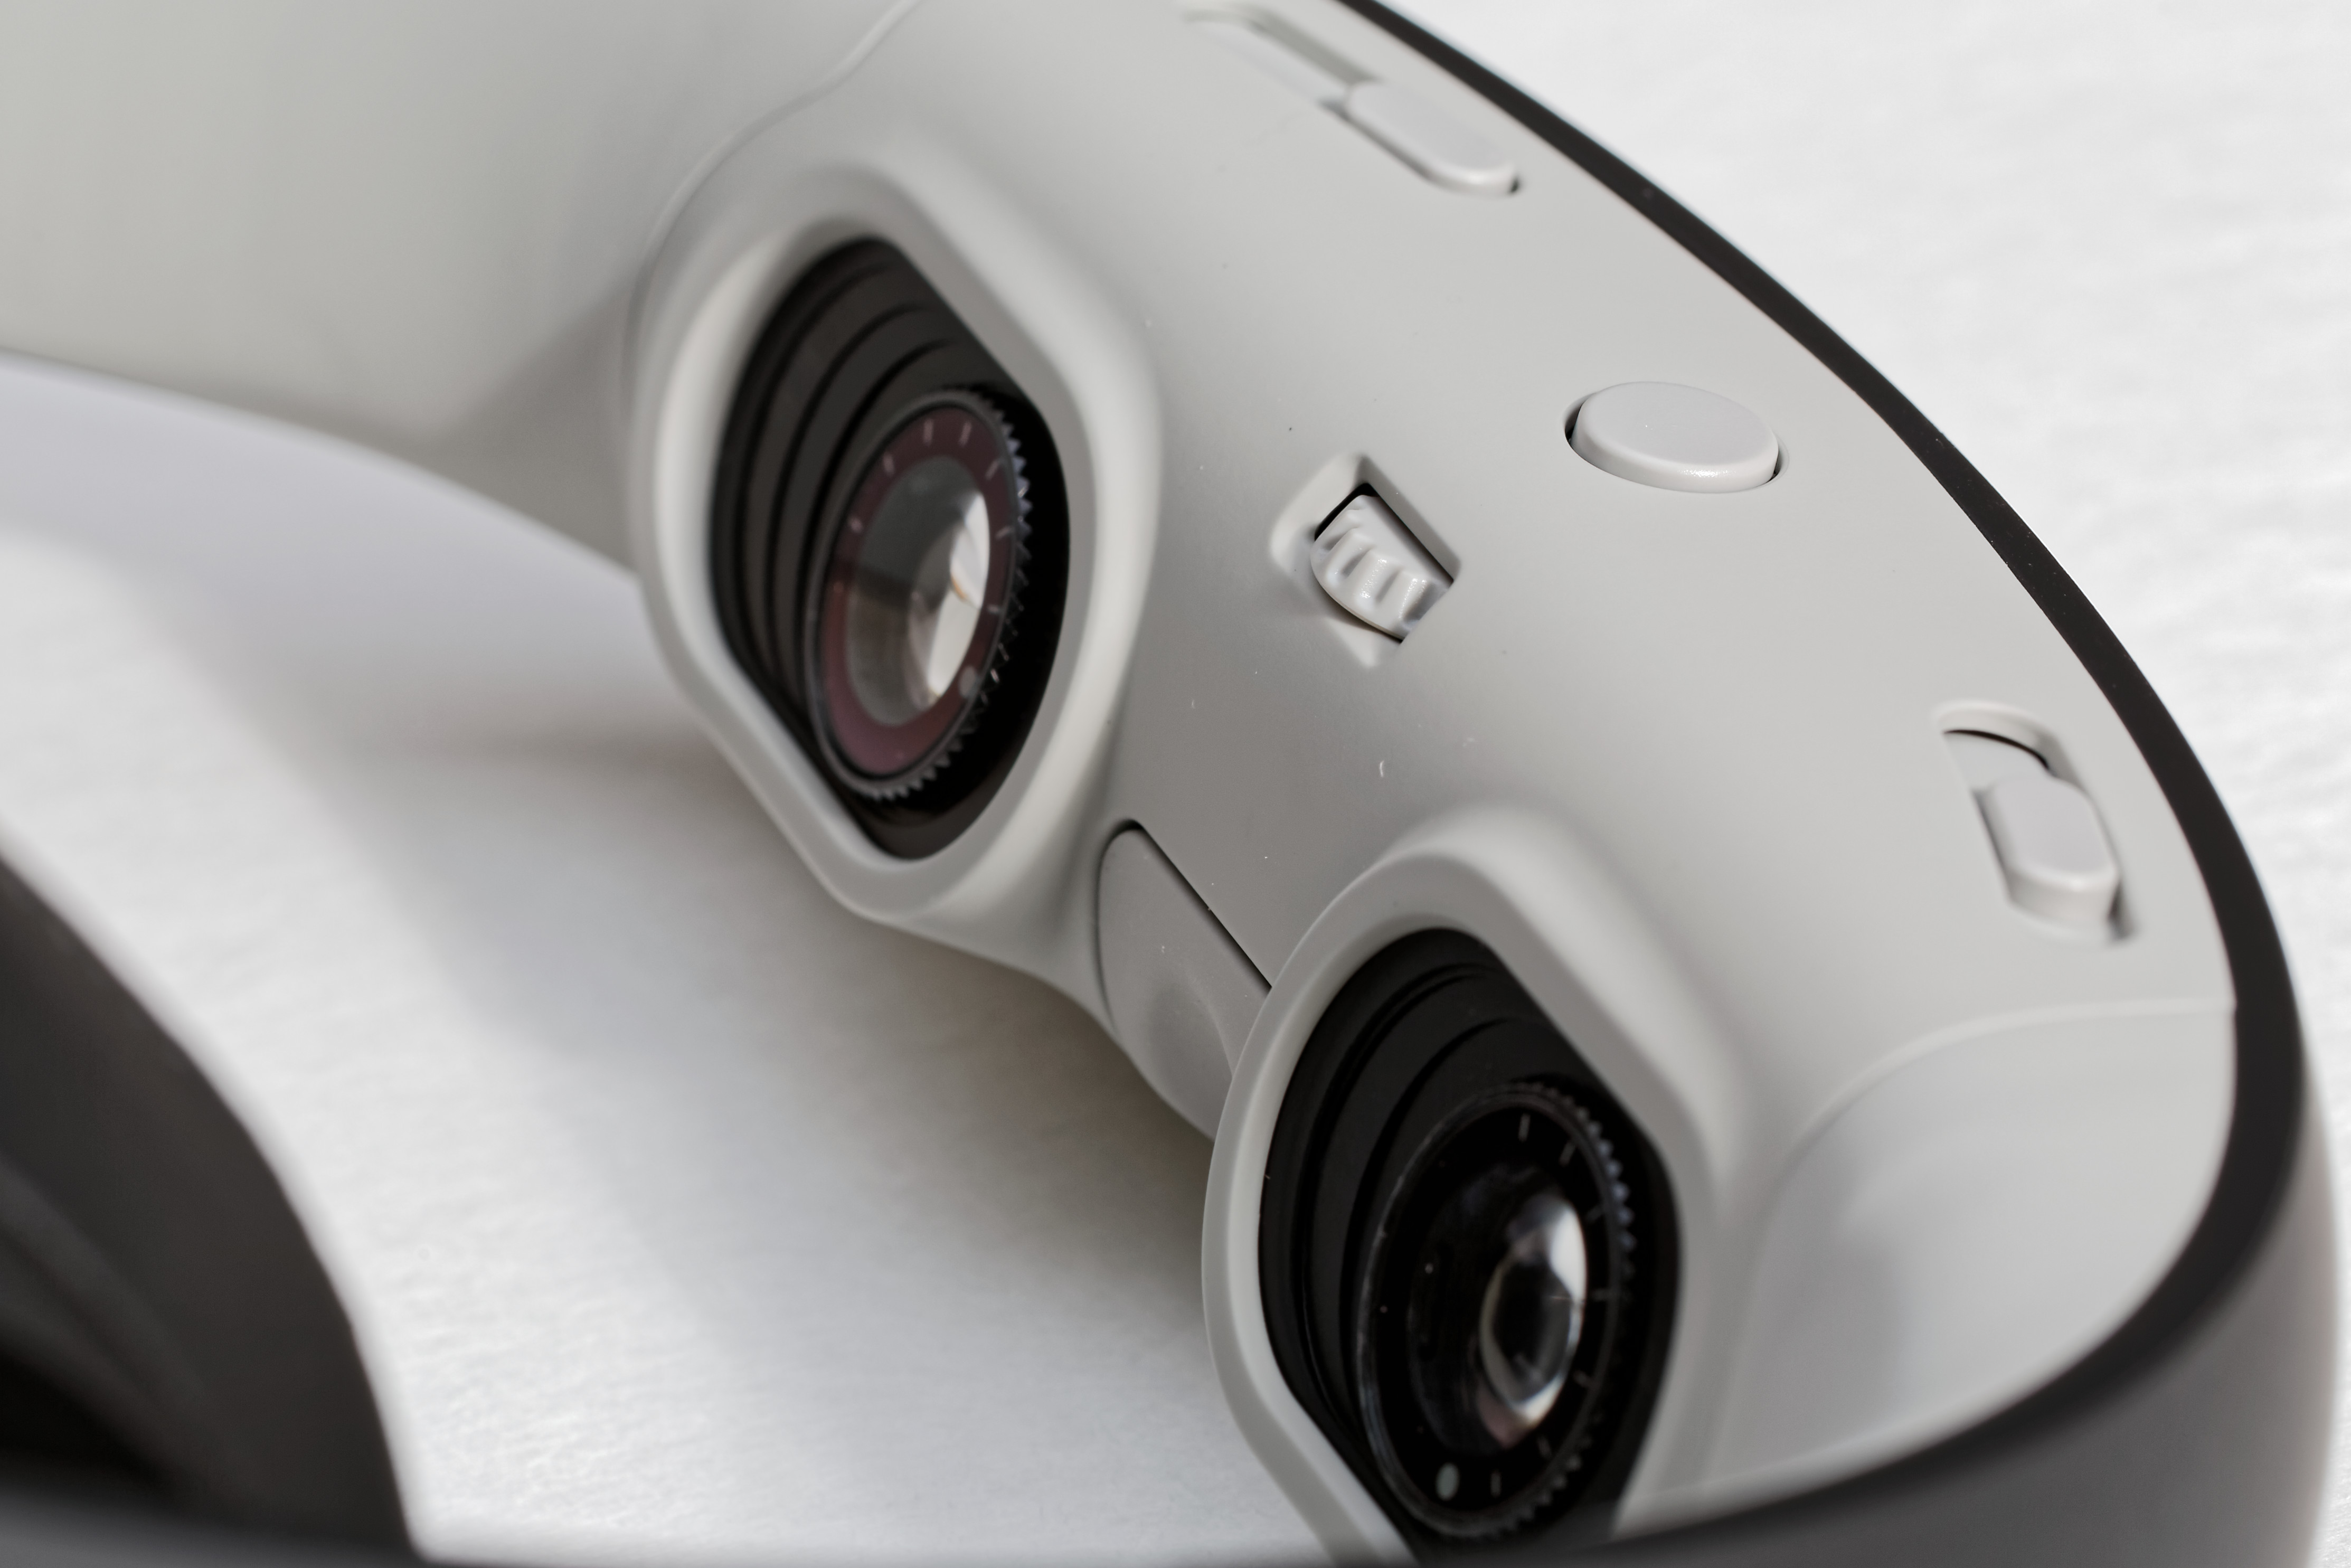 The Glyph's DLP view lenses are angled slightly up, meaning you need to push it a bit down your nose to get the best viewing position.